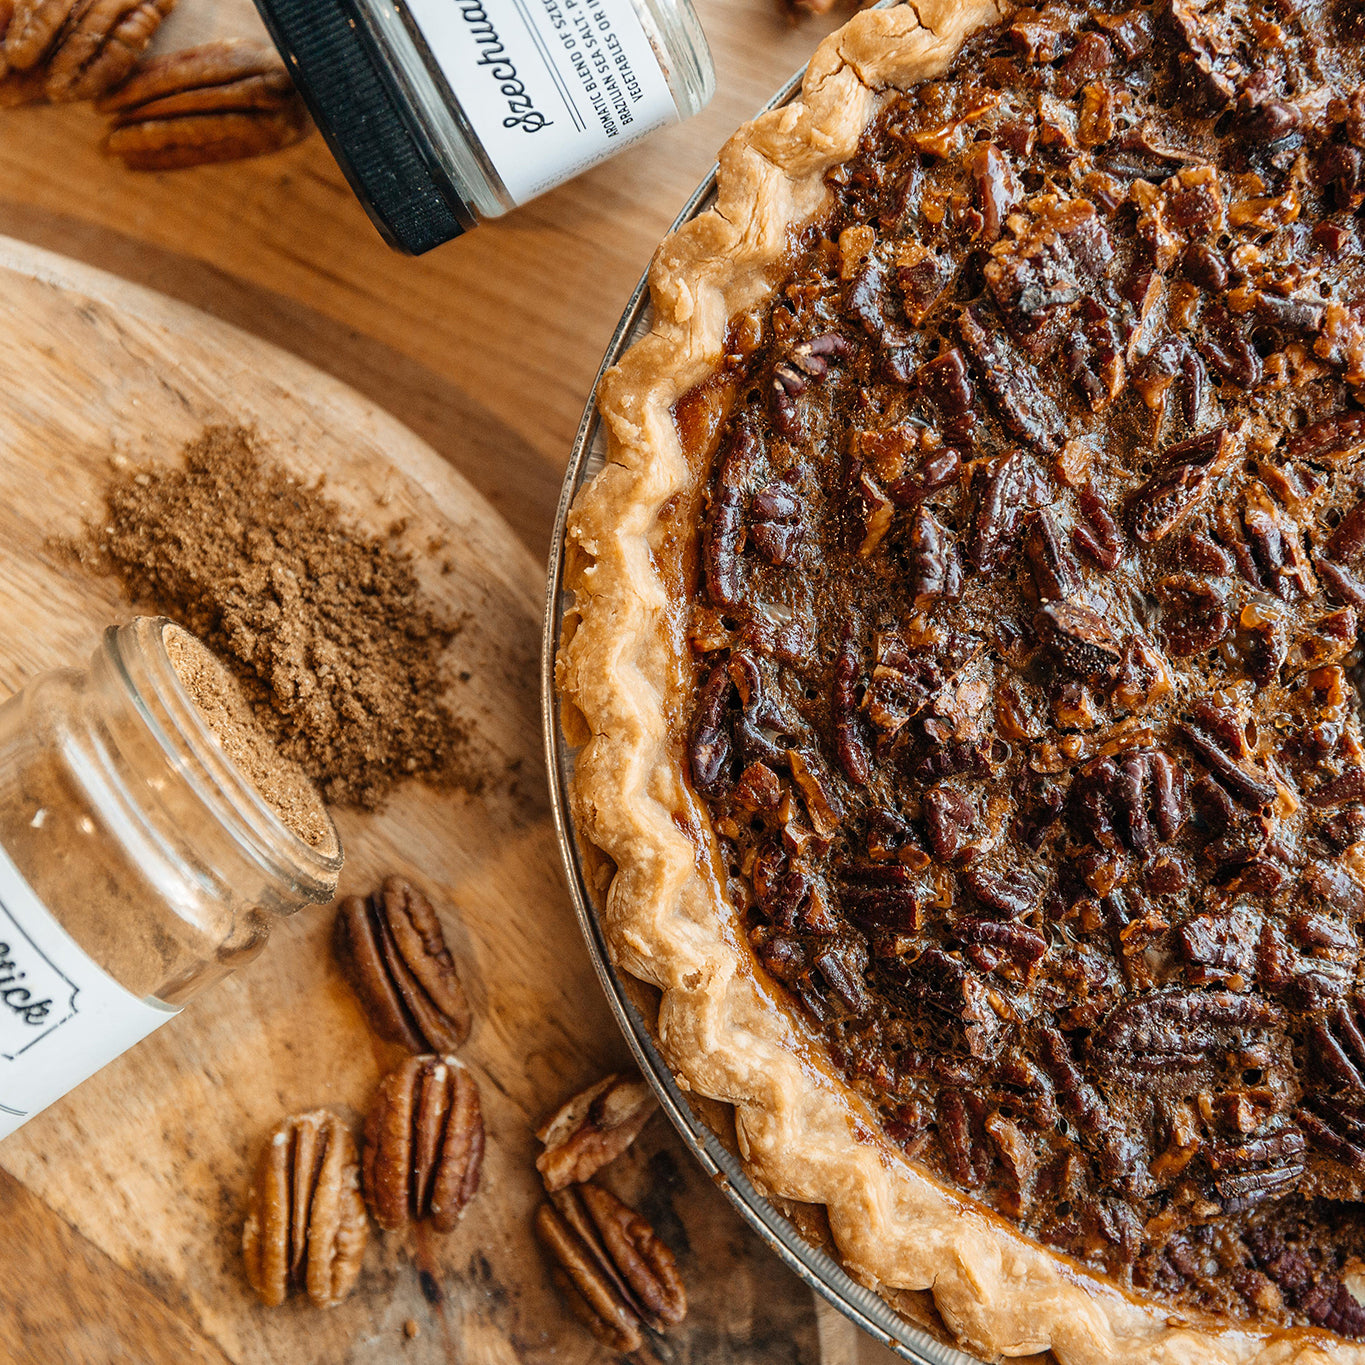 Chinese Five Spice Pecan Pie